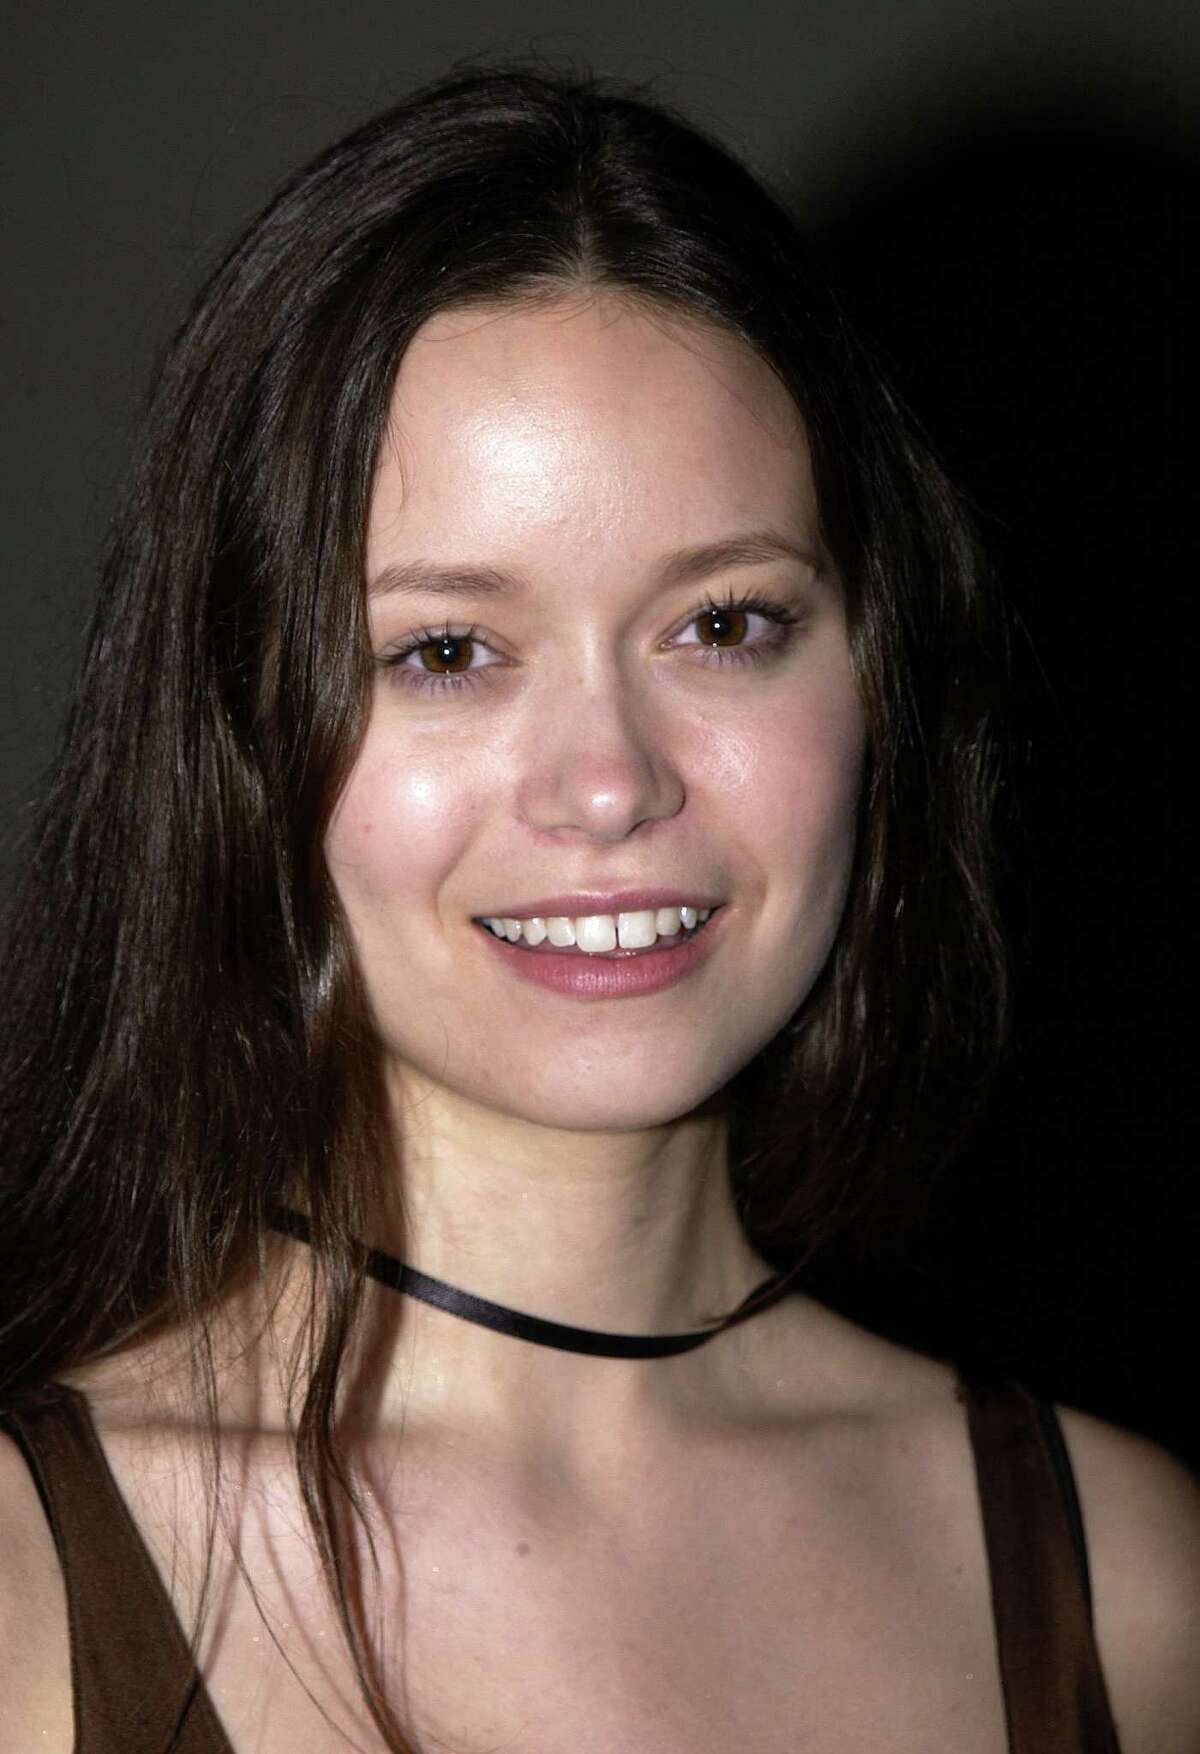 """Summer Glau Then: River Tam, also as Cameron """"Firefly"""" 2002-2003 and """"Serenity"""" 2005 also in """"Terminator: The Sarah Connor Chronicles"""" 2008-2009"""